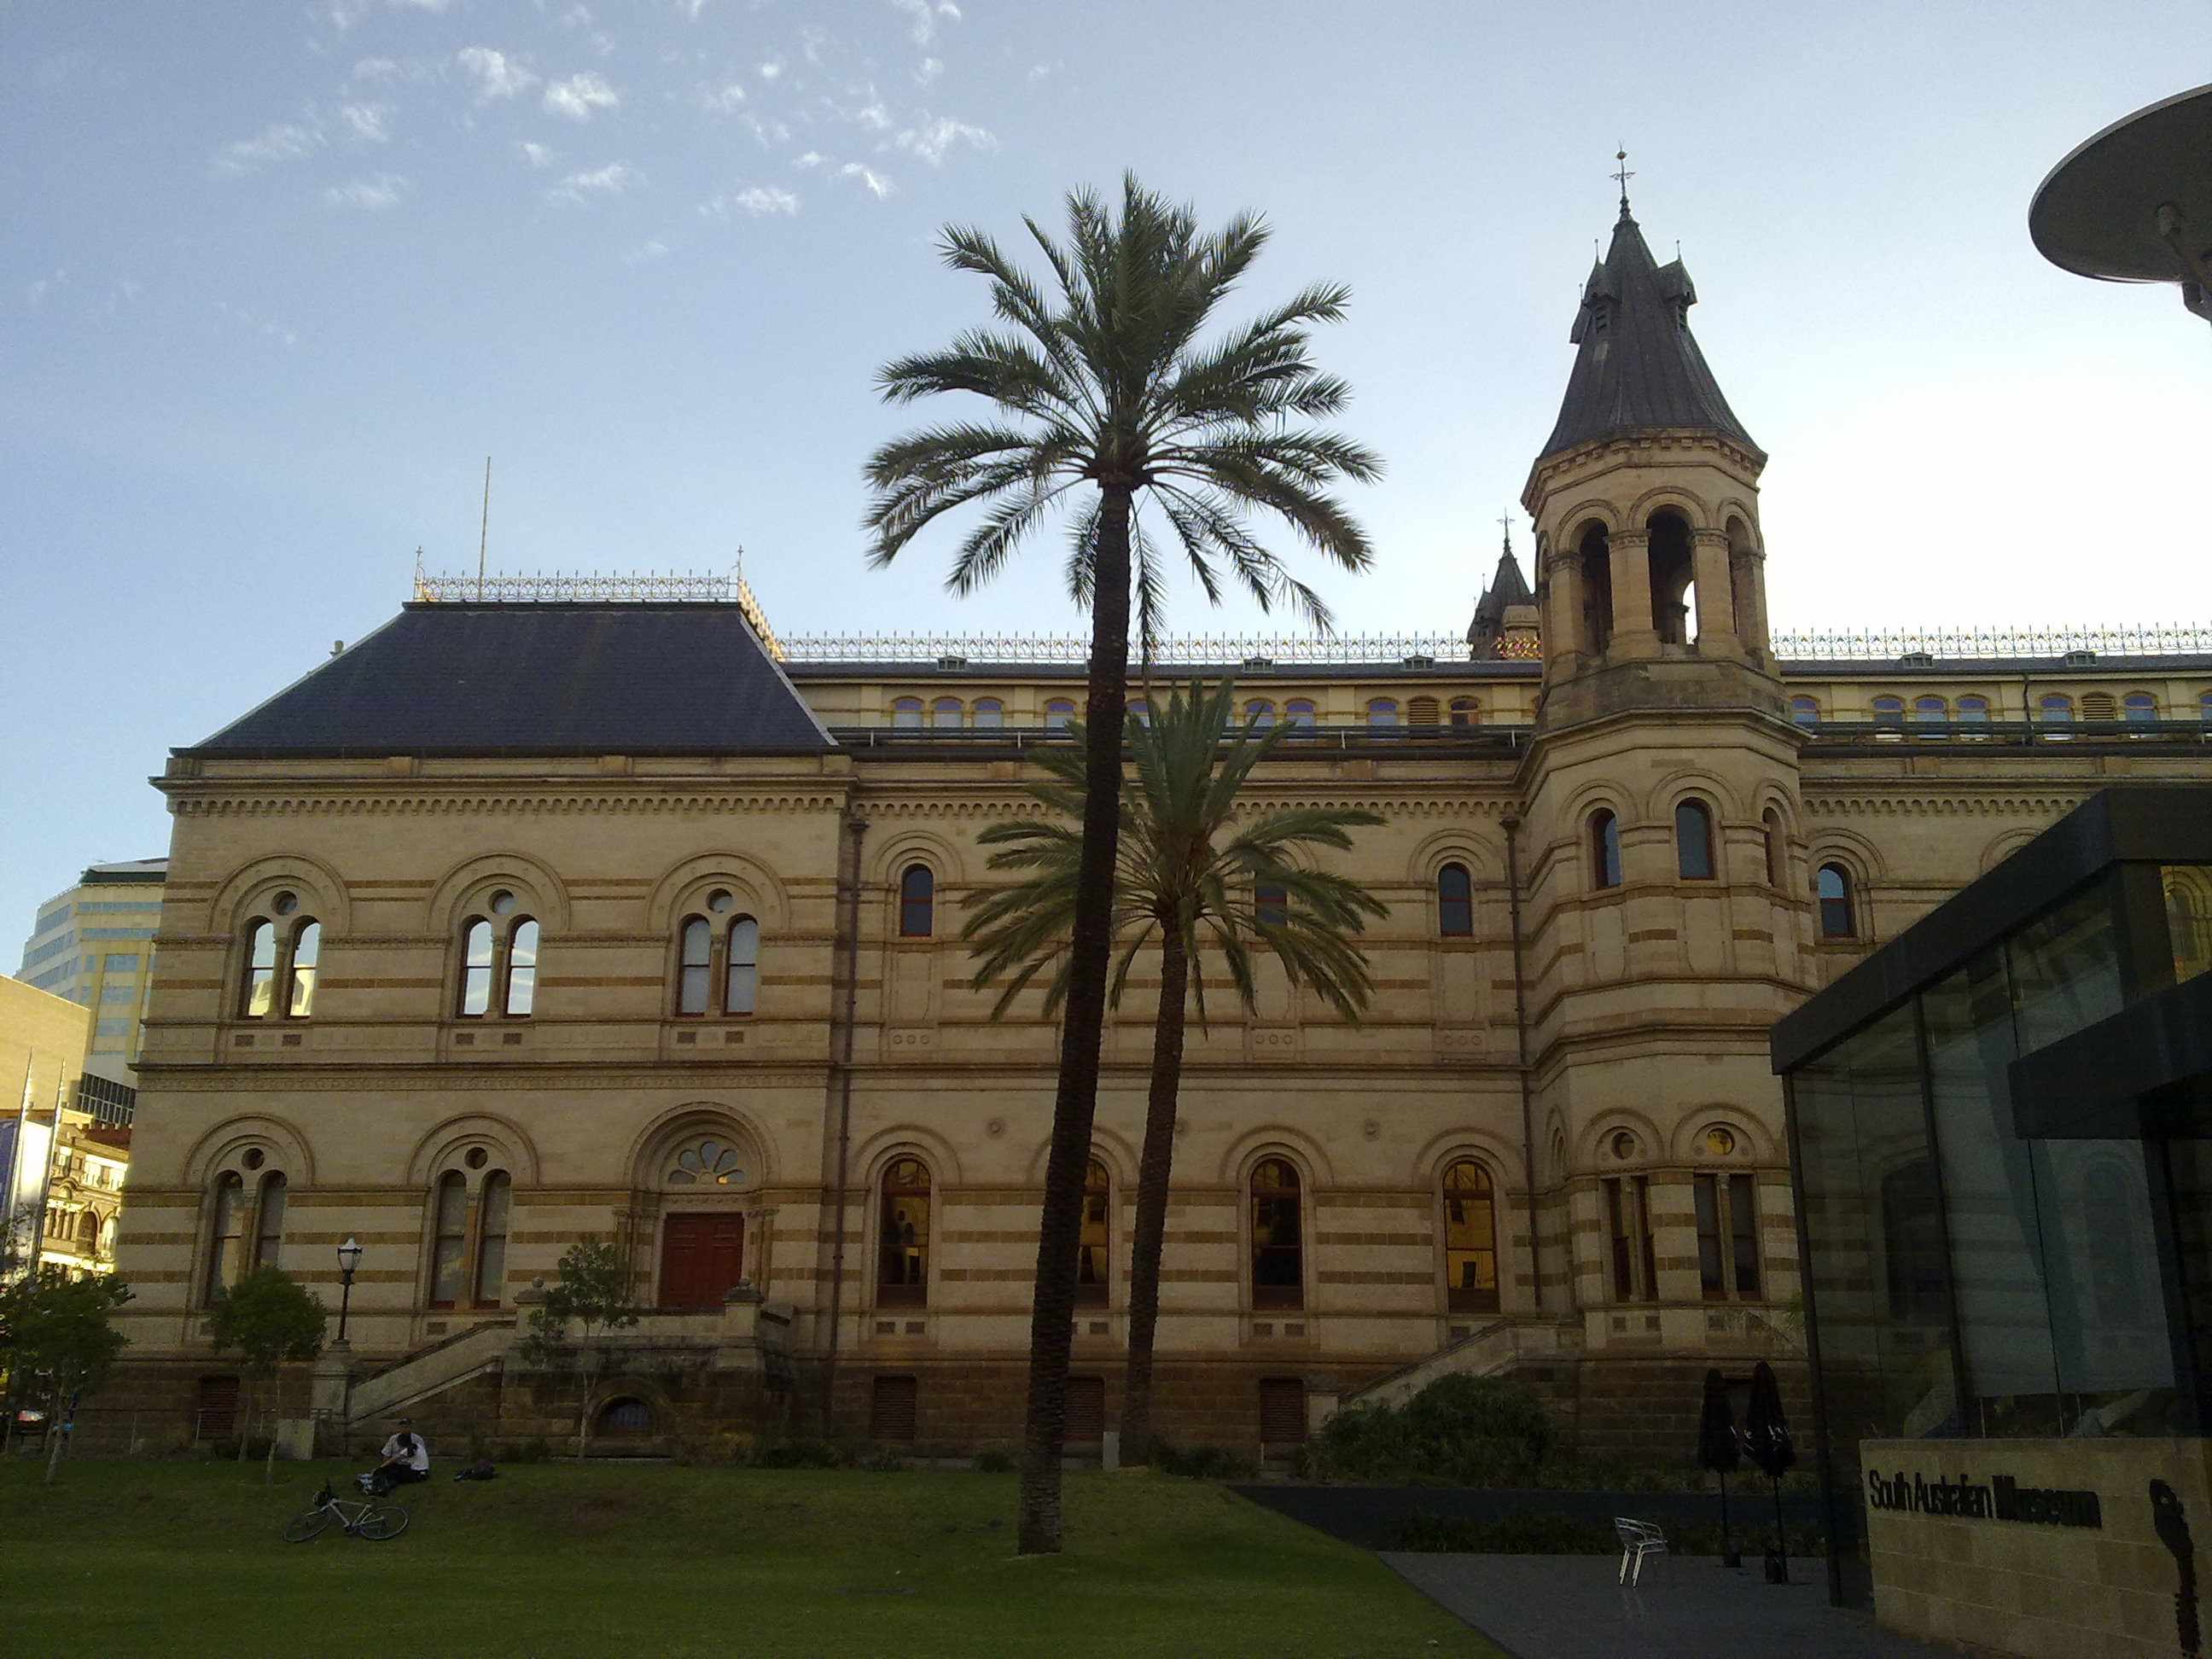 Adelaide South Australian Museum